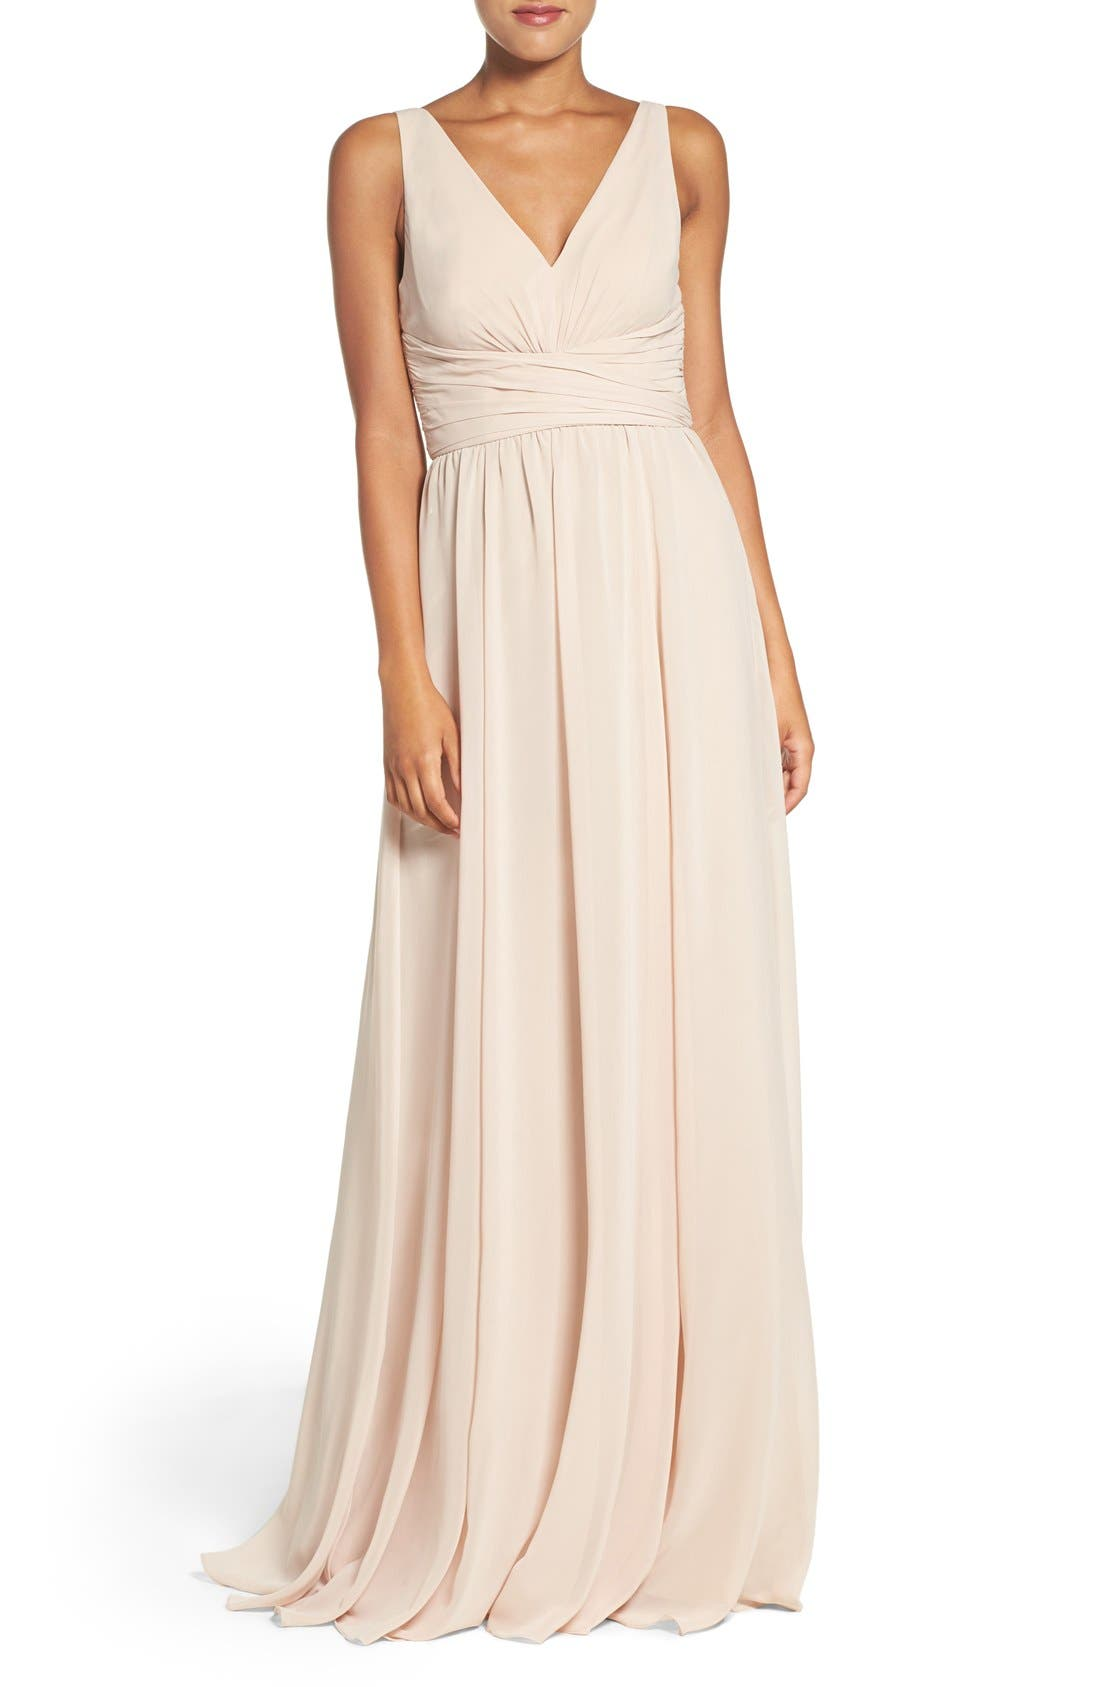 'Justine' Double V-Neck Chiffon Gown,                             Main thumbnail 1, color,                             220